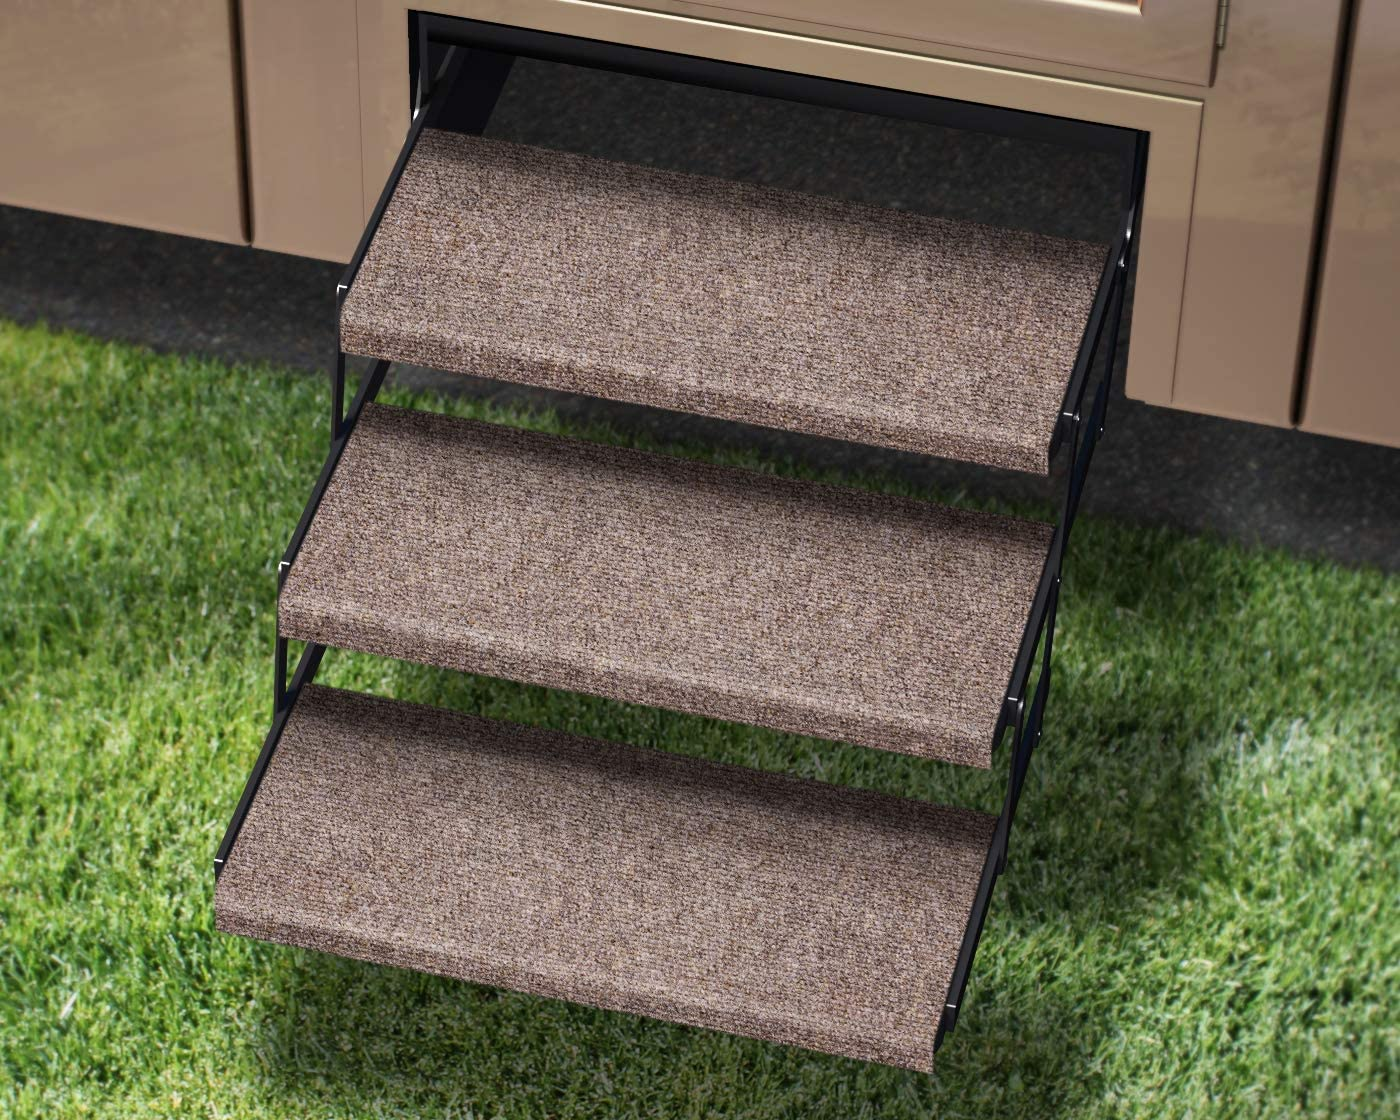 Wide Prest-O-Fit 3-Pack 2-4077 Outrigger Jumbo RV Step Rug Walnut Brown 23 in